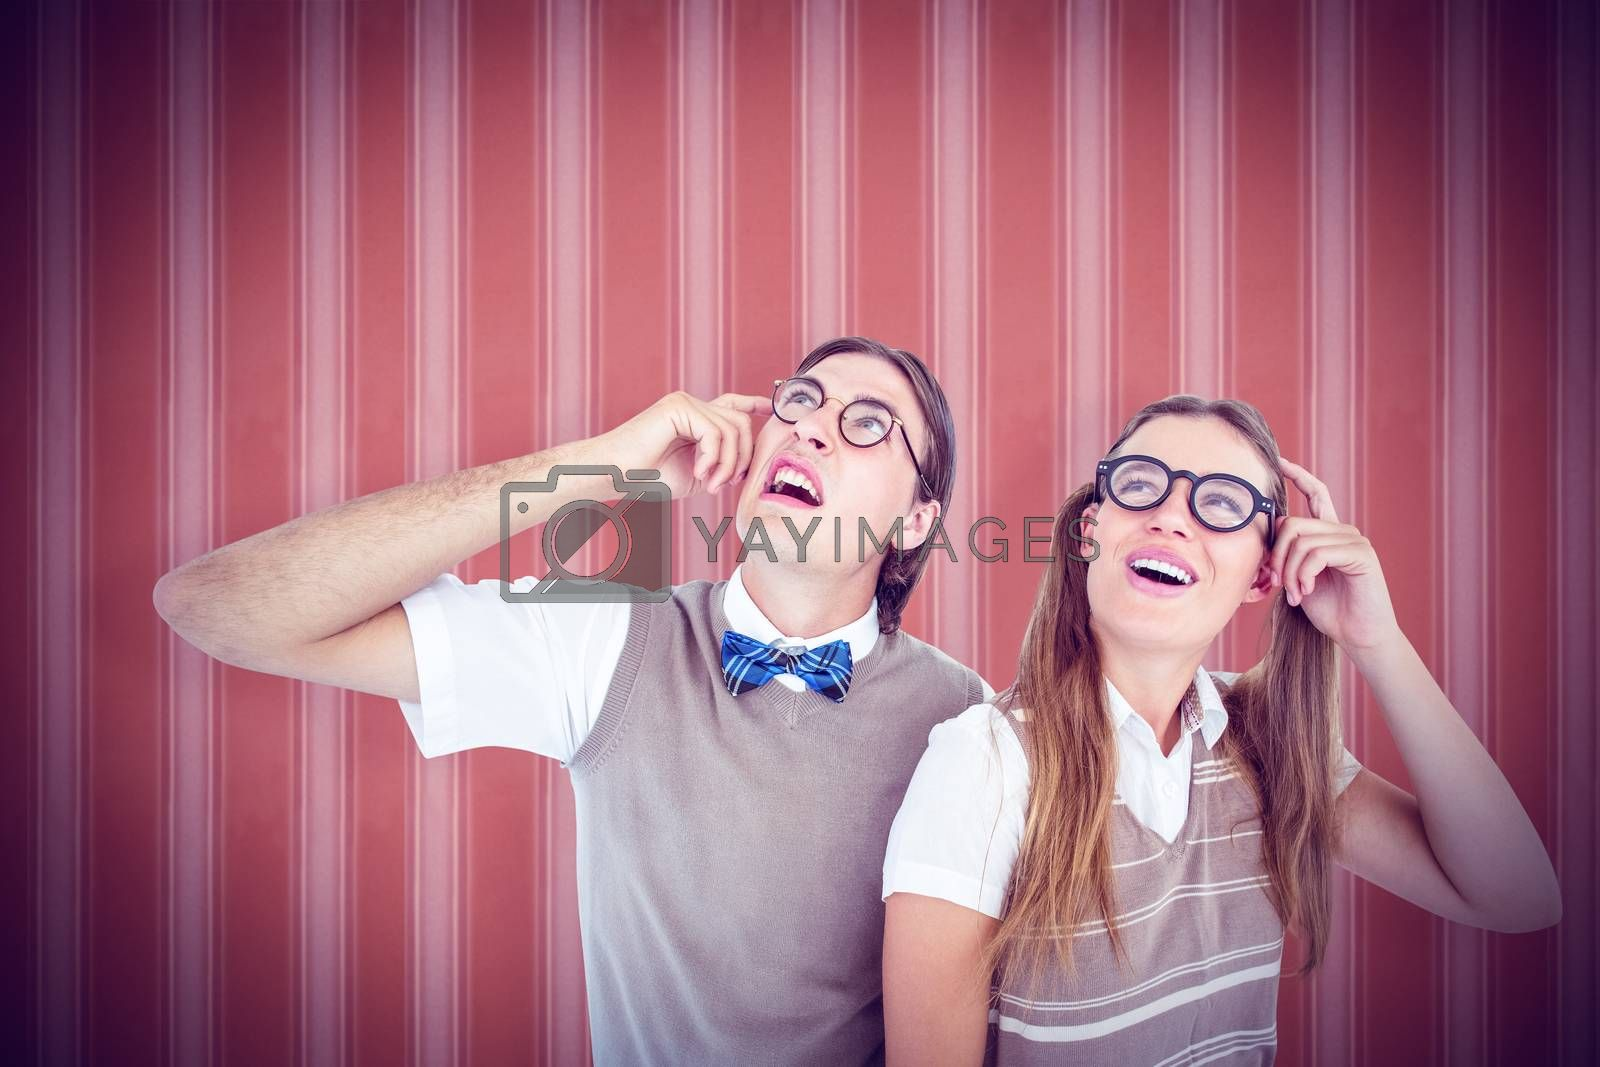 Geeky hipsters looking confused  against background